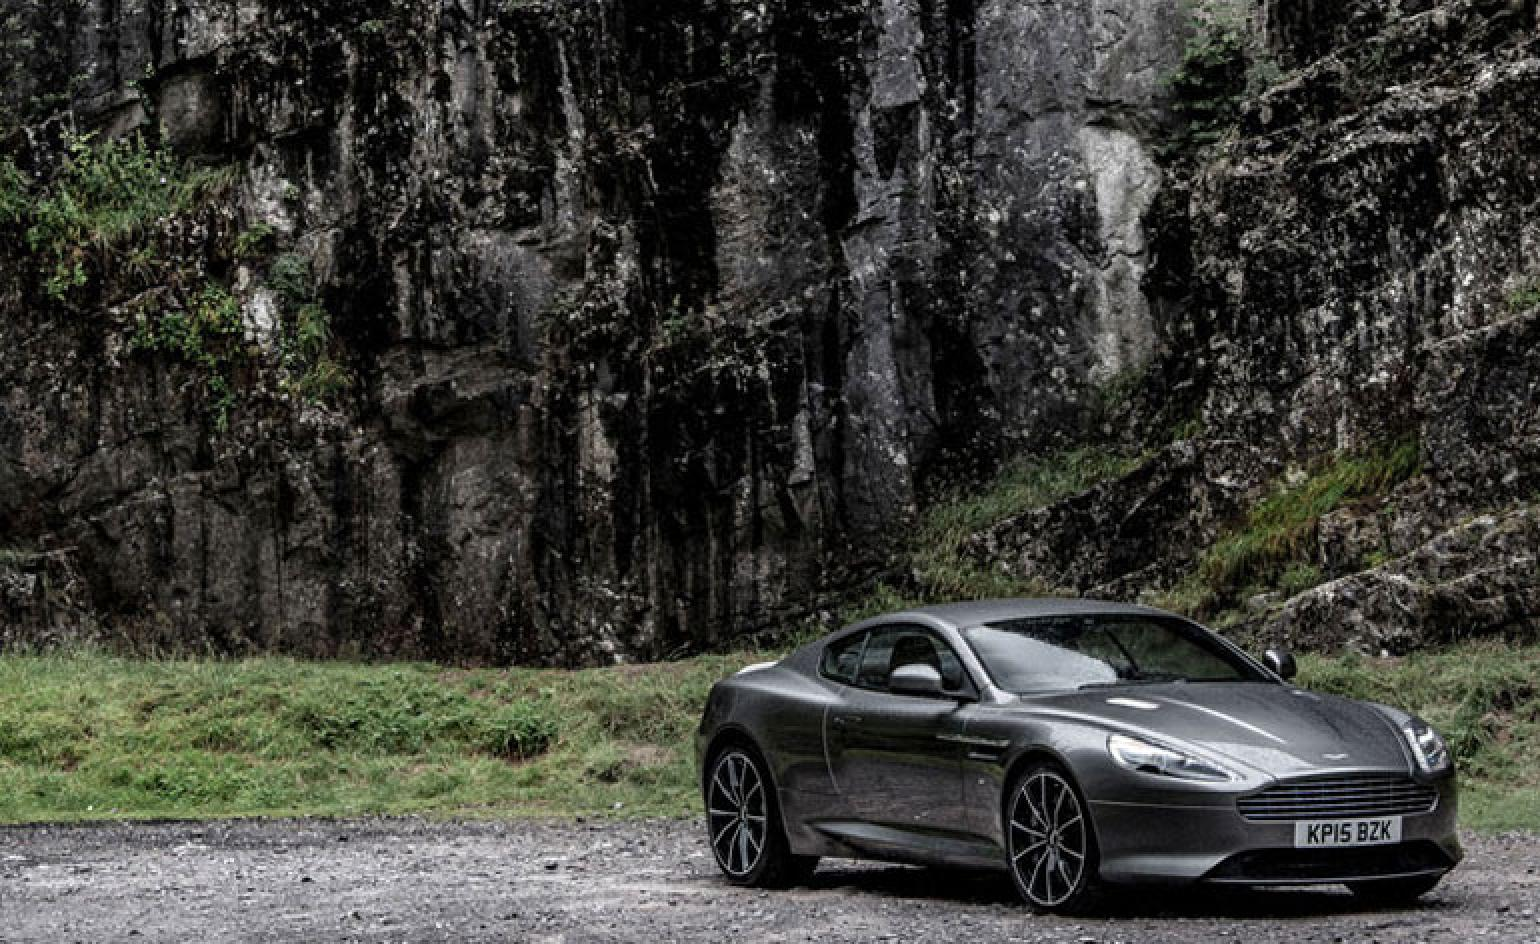 Aston Martin S Db9 Gt Sees Out The Historic Model Wallpaper